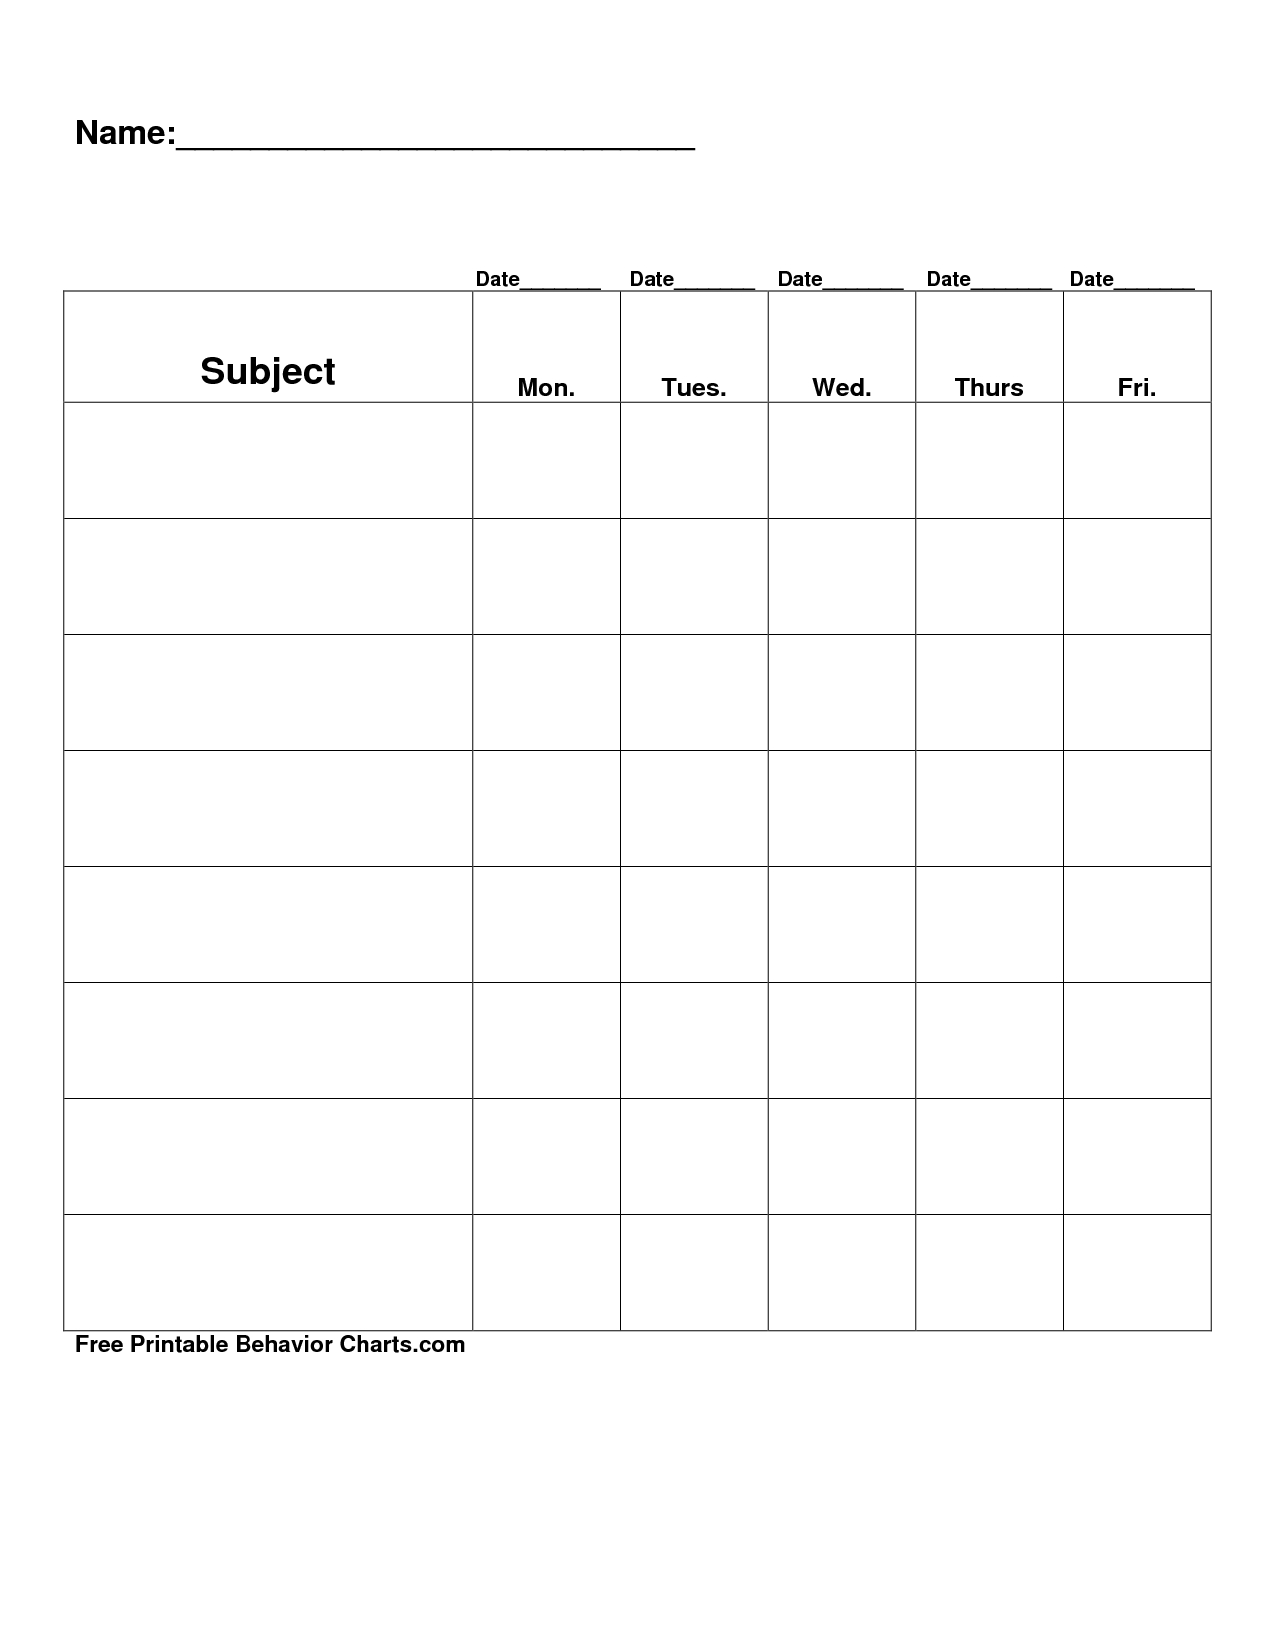 Free Printable Blank Charts | Free Printable Behavior Charts-Monthly Behavior Charts Printable